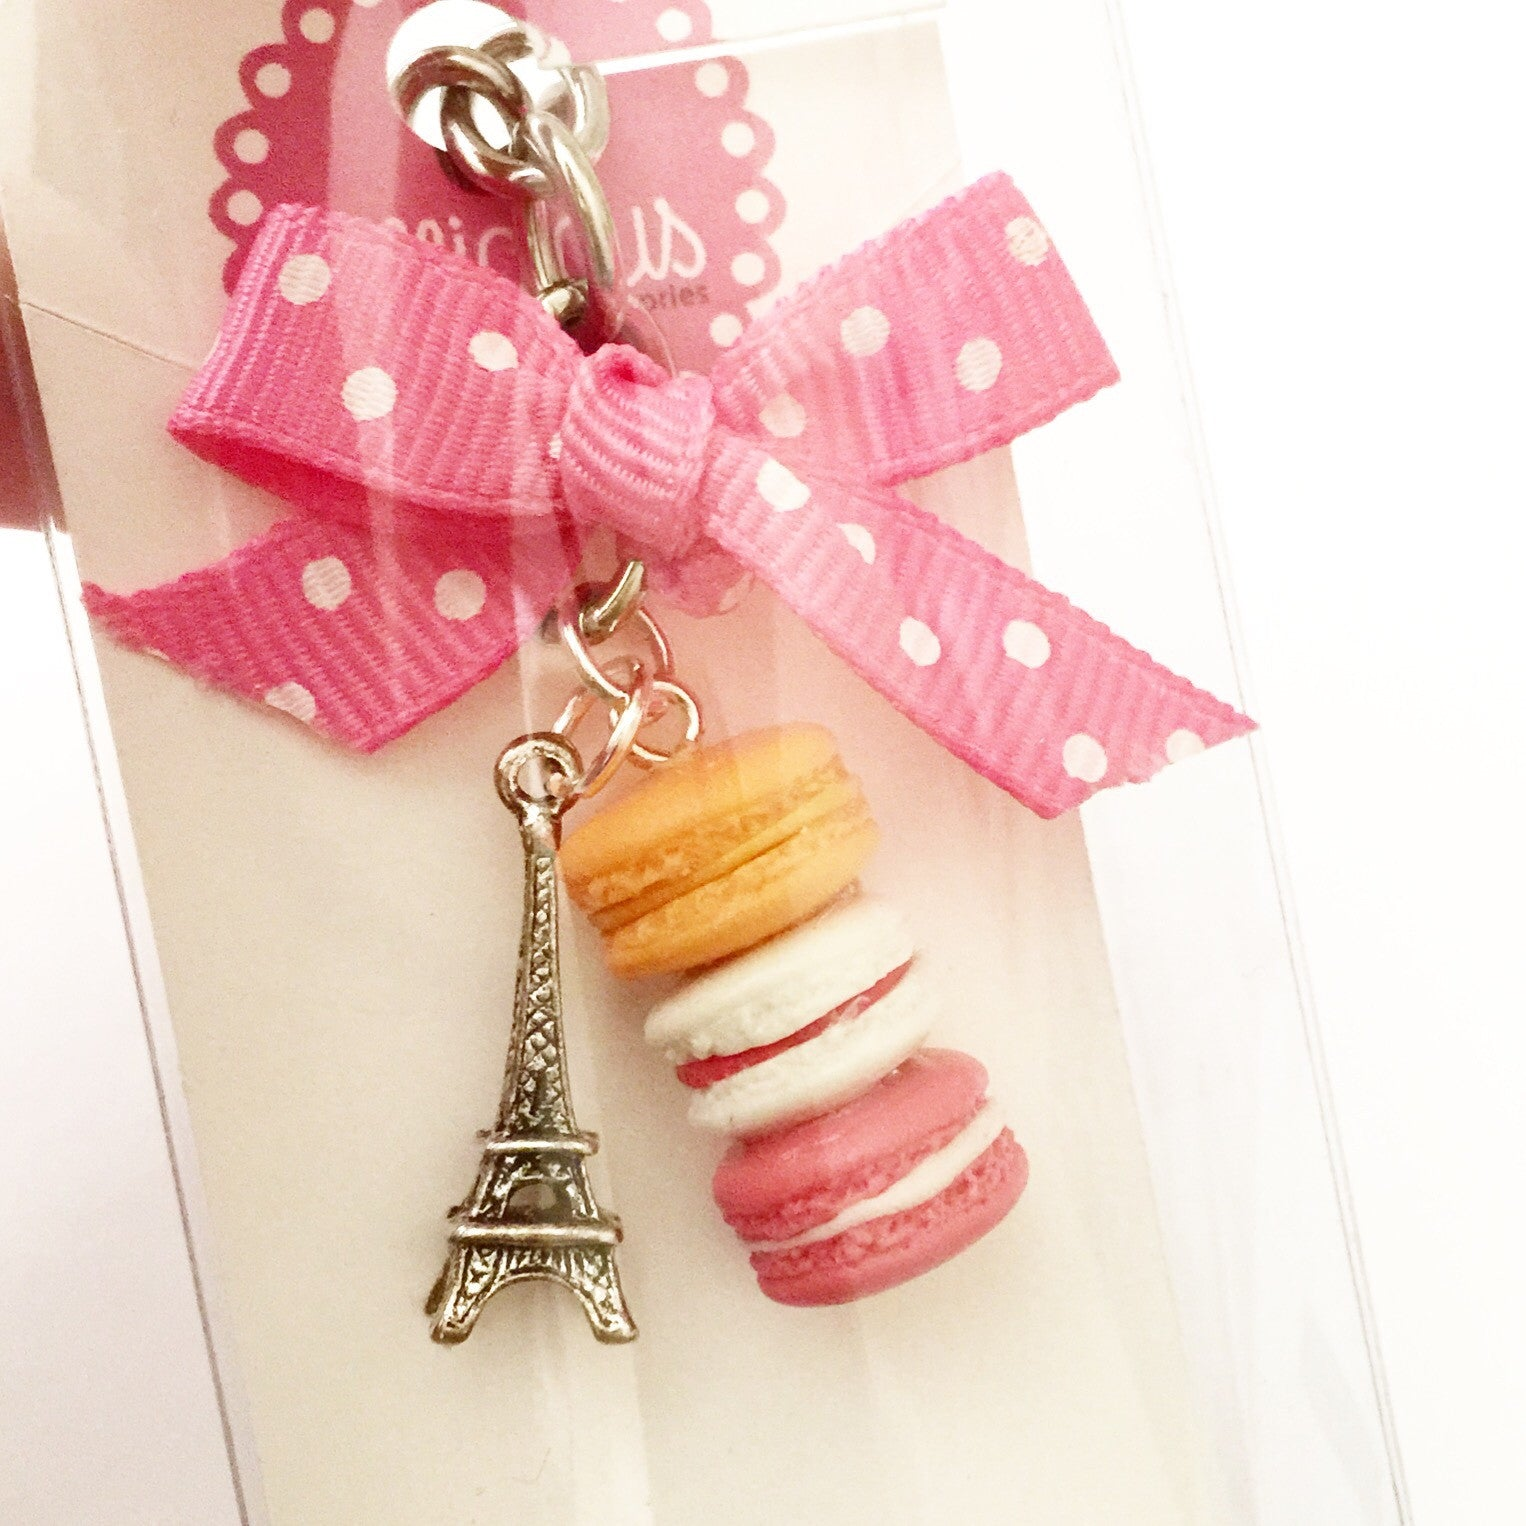 Parisian Themed Keychain - Jillicious charms and accessories - 7